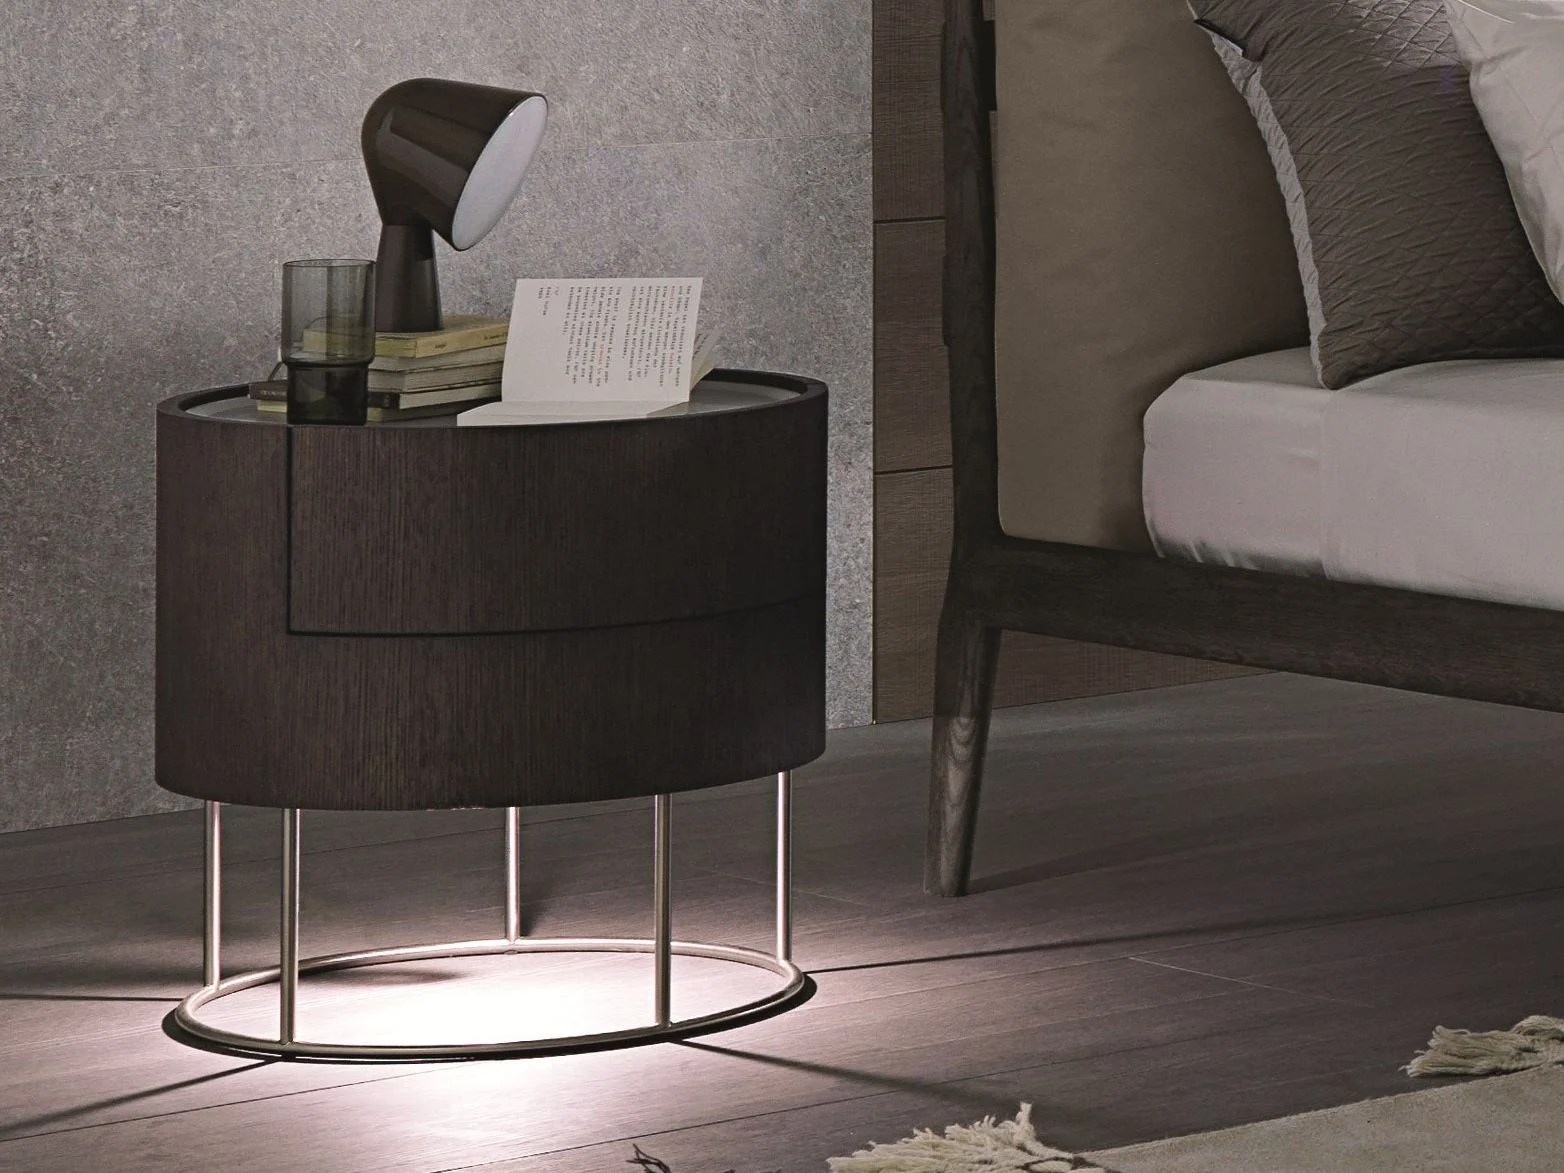 Round Oak Bedside Table With Drawers With Built-in Lights